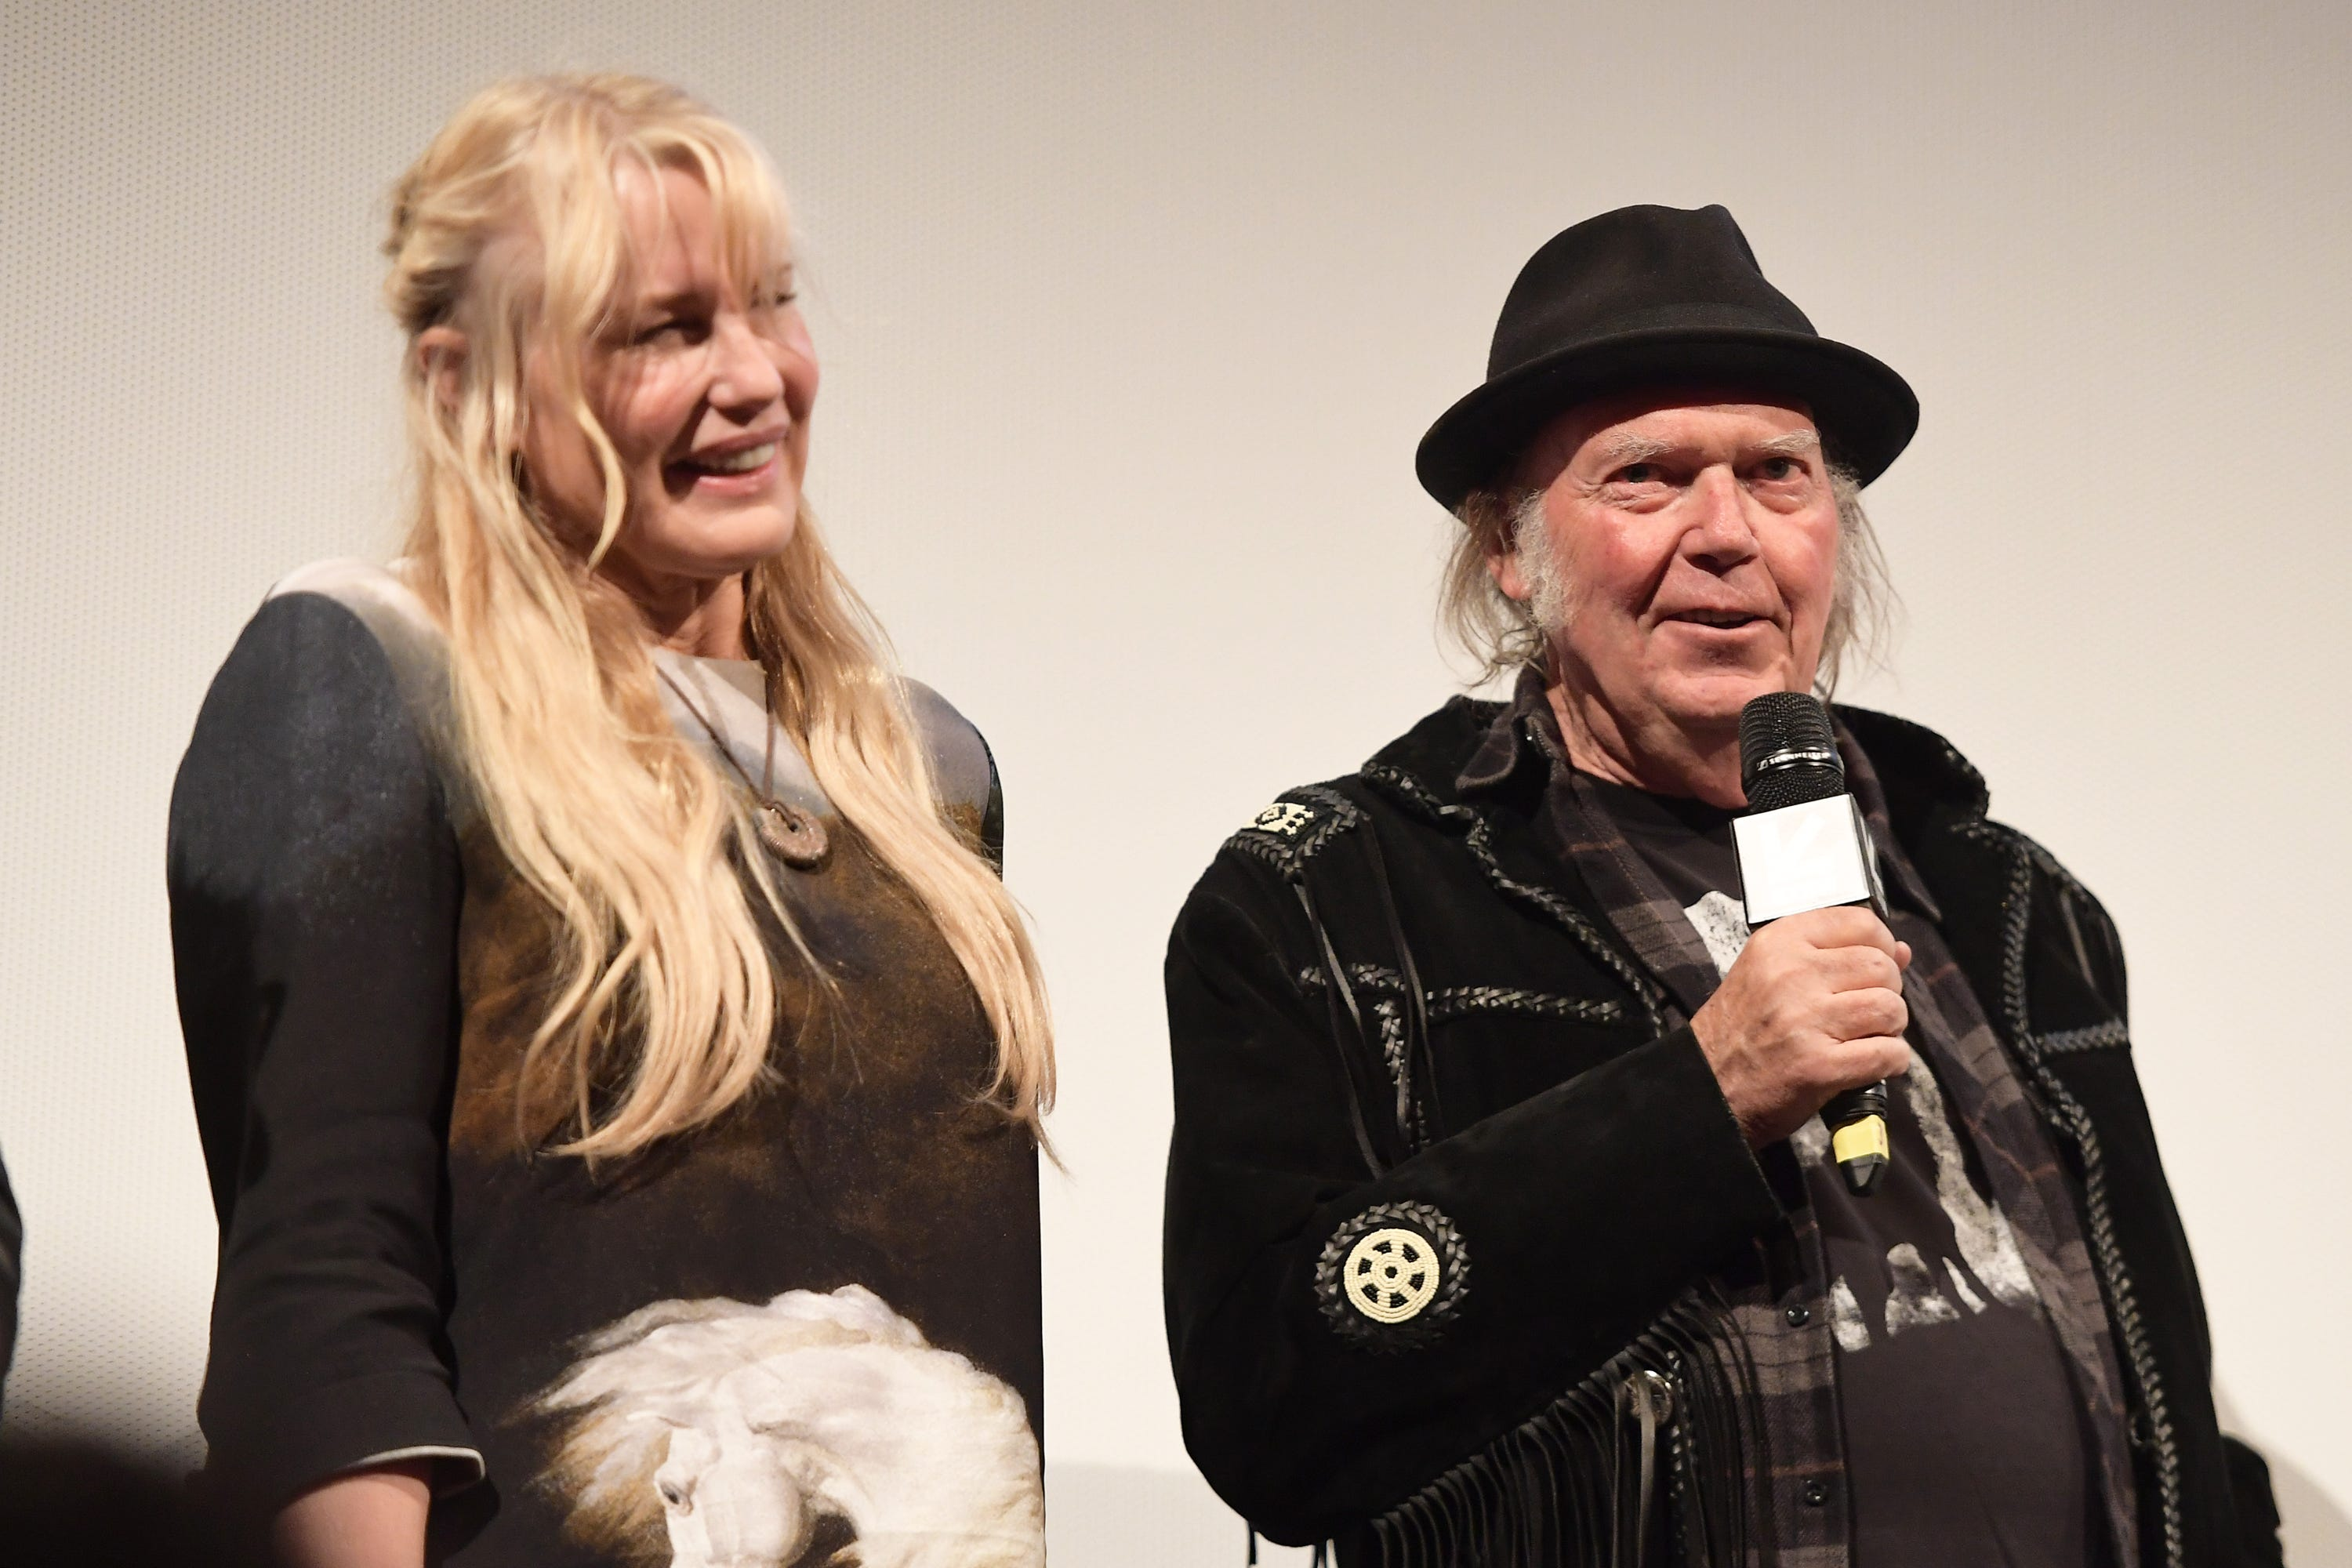 Neil Young and Daryl Hannah got married? So say their pals on social media